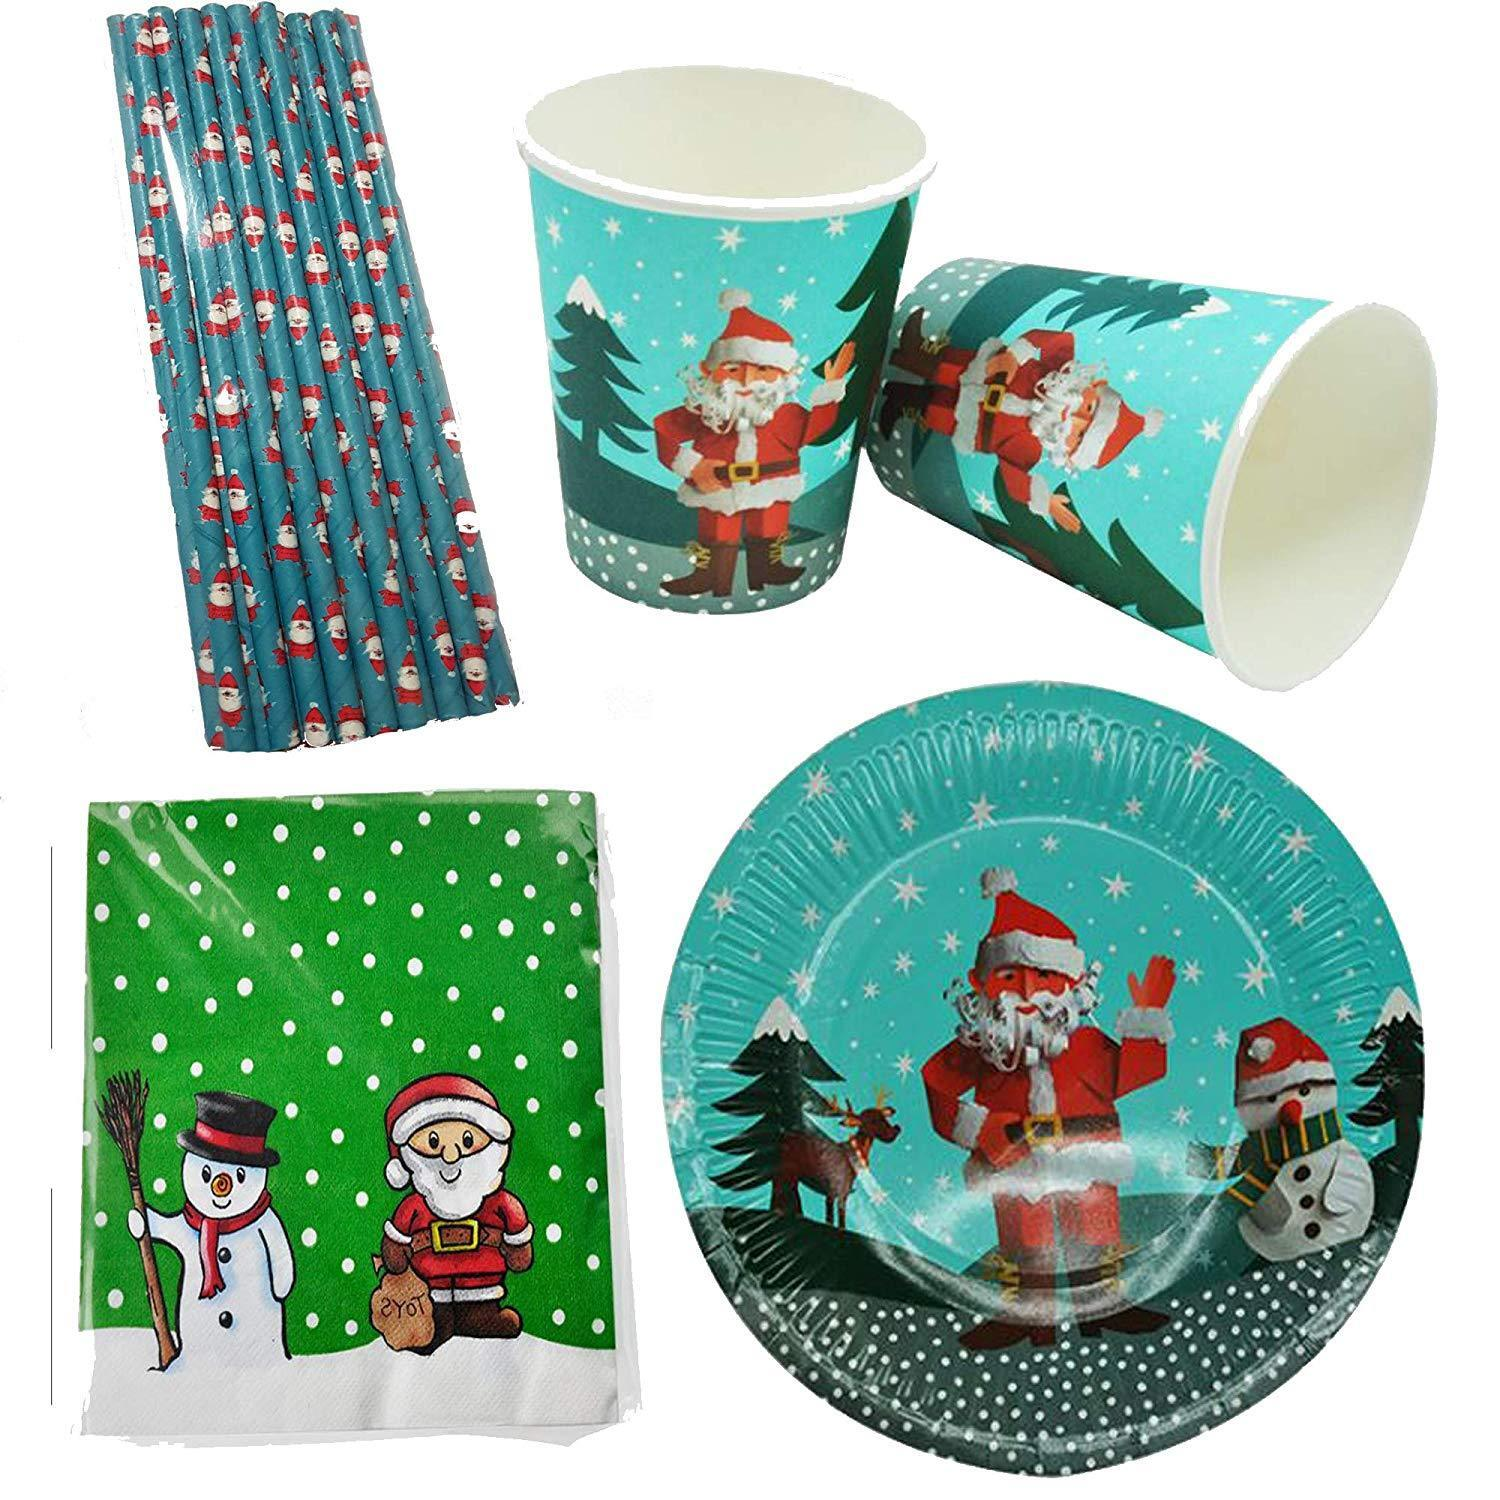 Christmas Paper Plates And Napkins.Details About Christmas Xmas Santa Kids Party Set Tableware Paper Plates Cups Straws Napkins 1